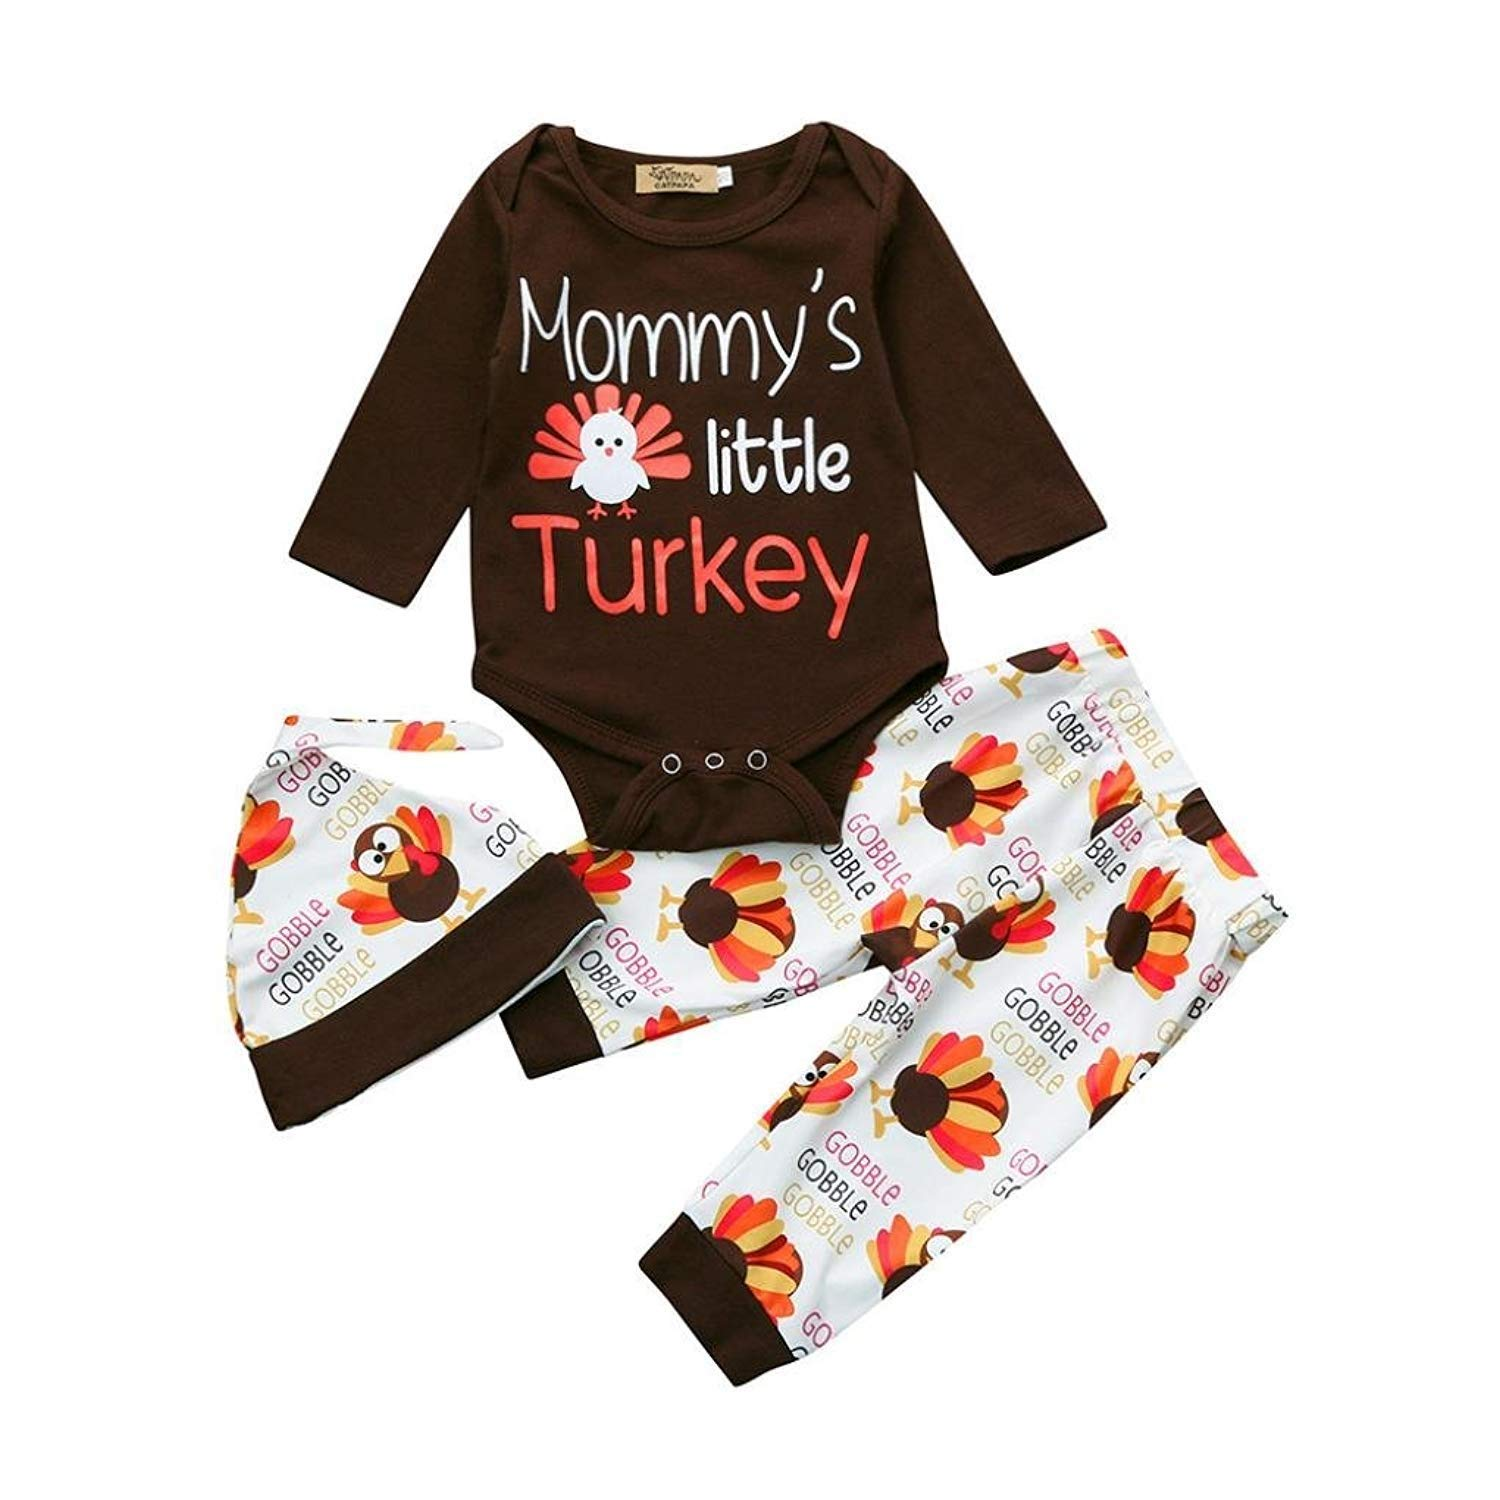 74b947864 Baby Girls Boys Thanksgiving Clothes Long Sleeve Turkey Romper  Tops+Pants+Hat Outfit Set